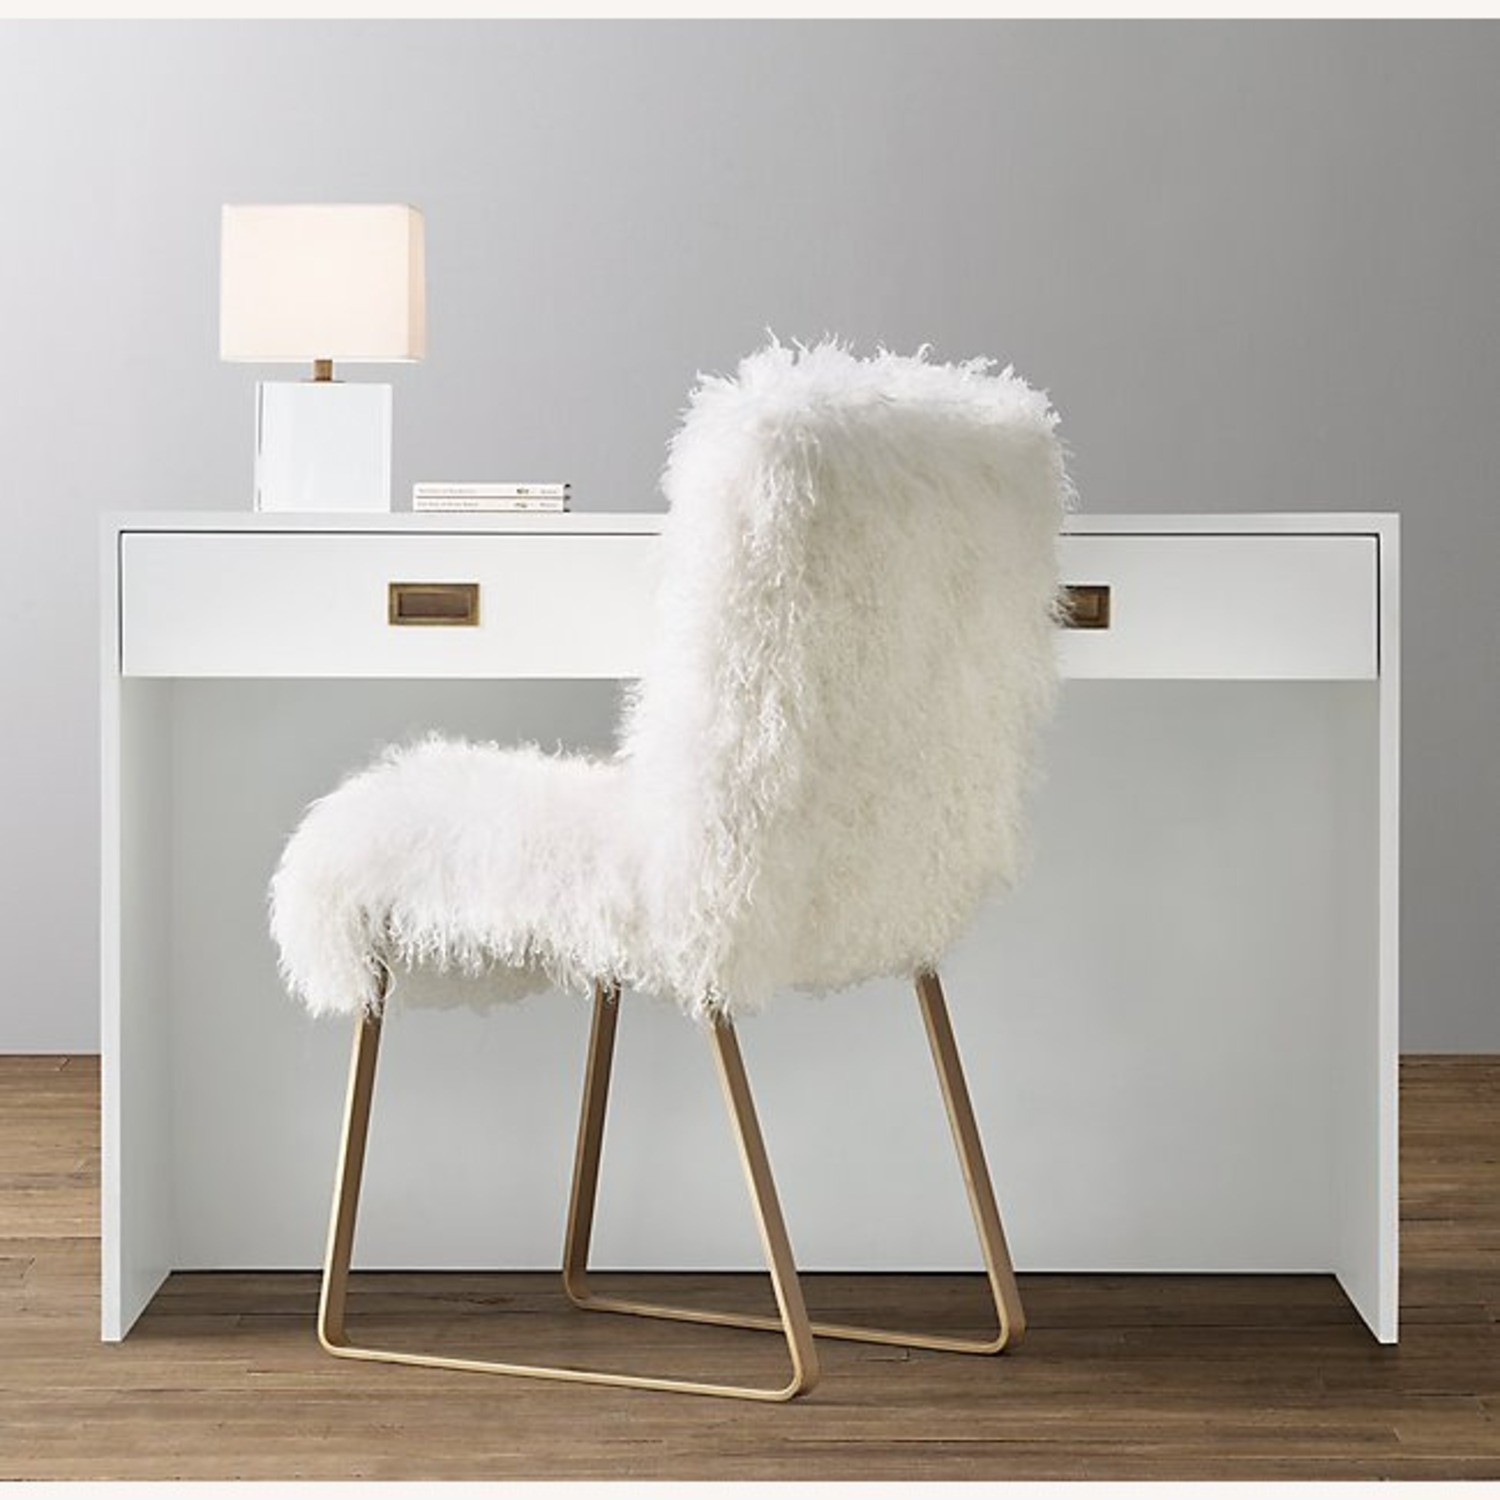 Restoration Hardware Avalon Desk in White - image-3